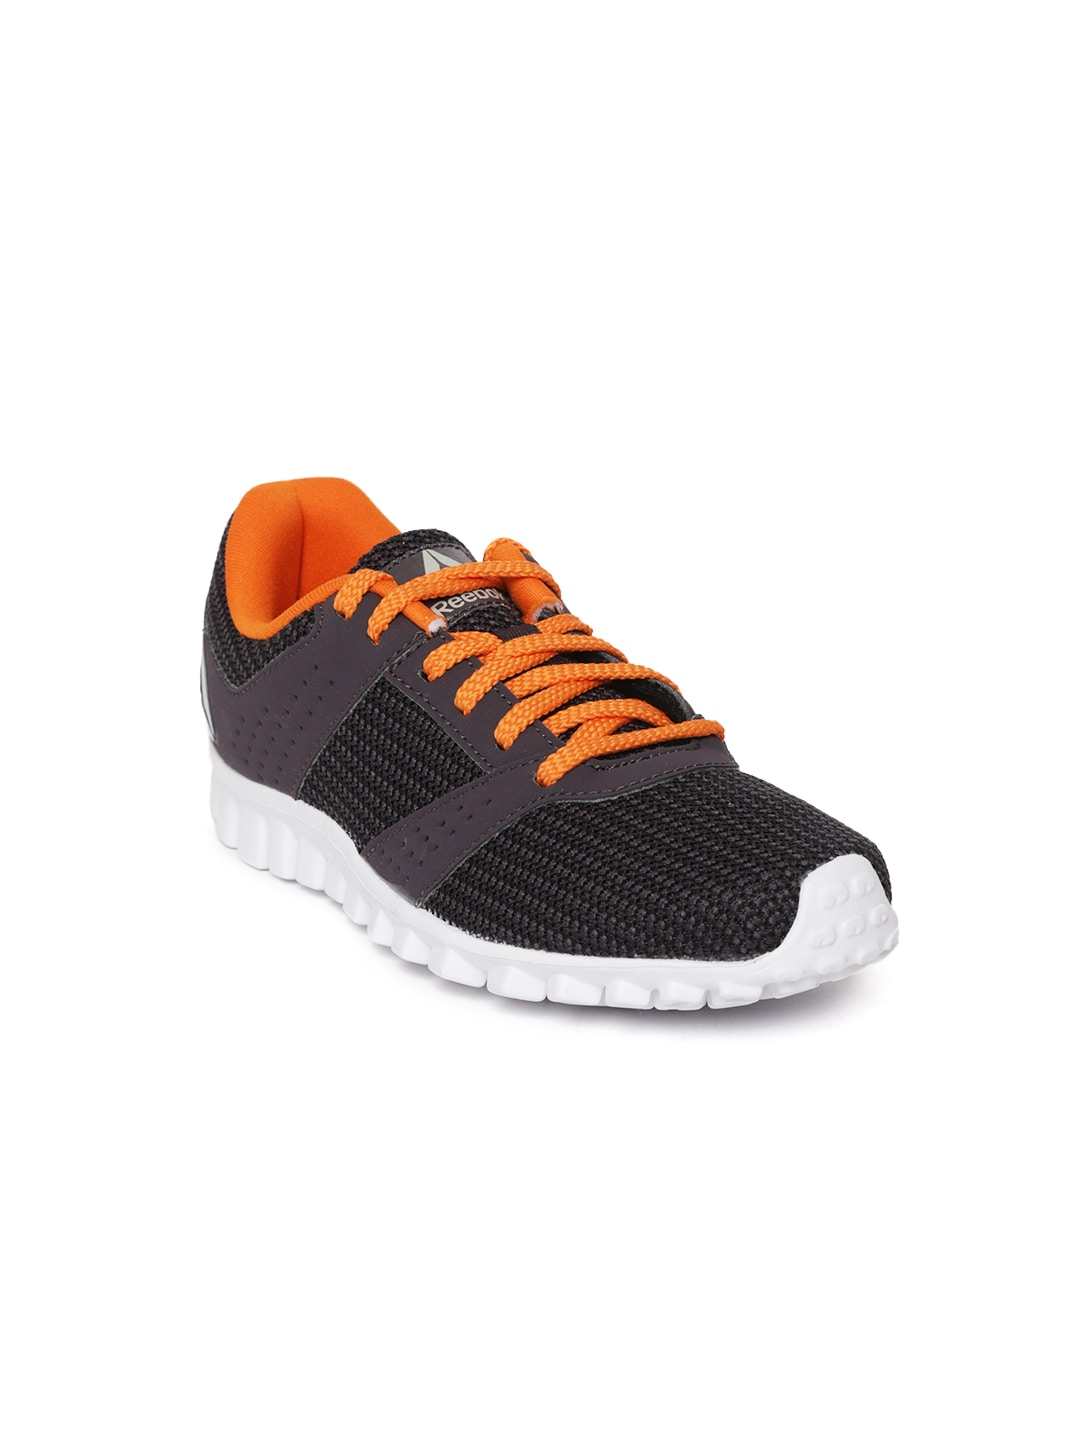 6252fb0c69a4c Boys Sports Shoes - Buy Sports Shoes For Kids Online in India